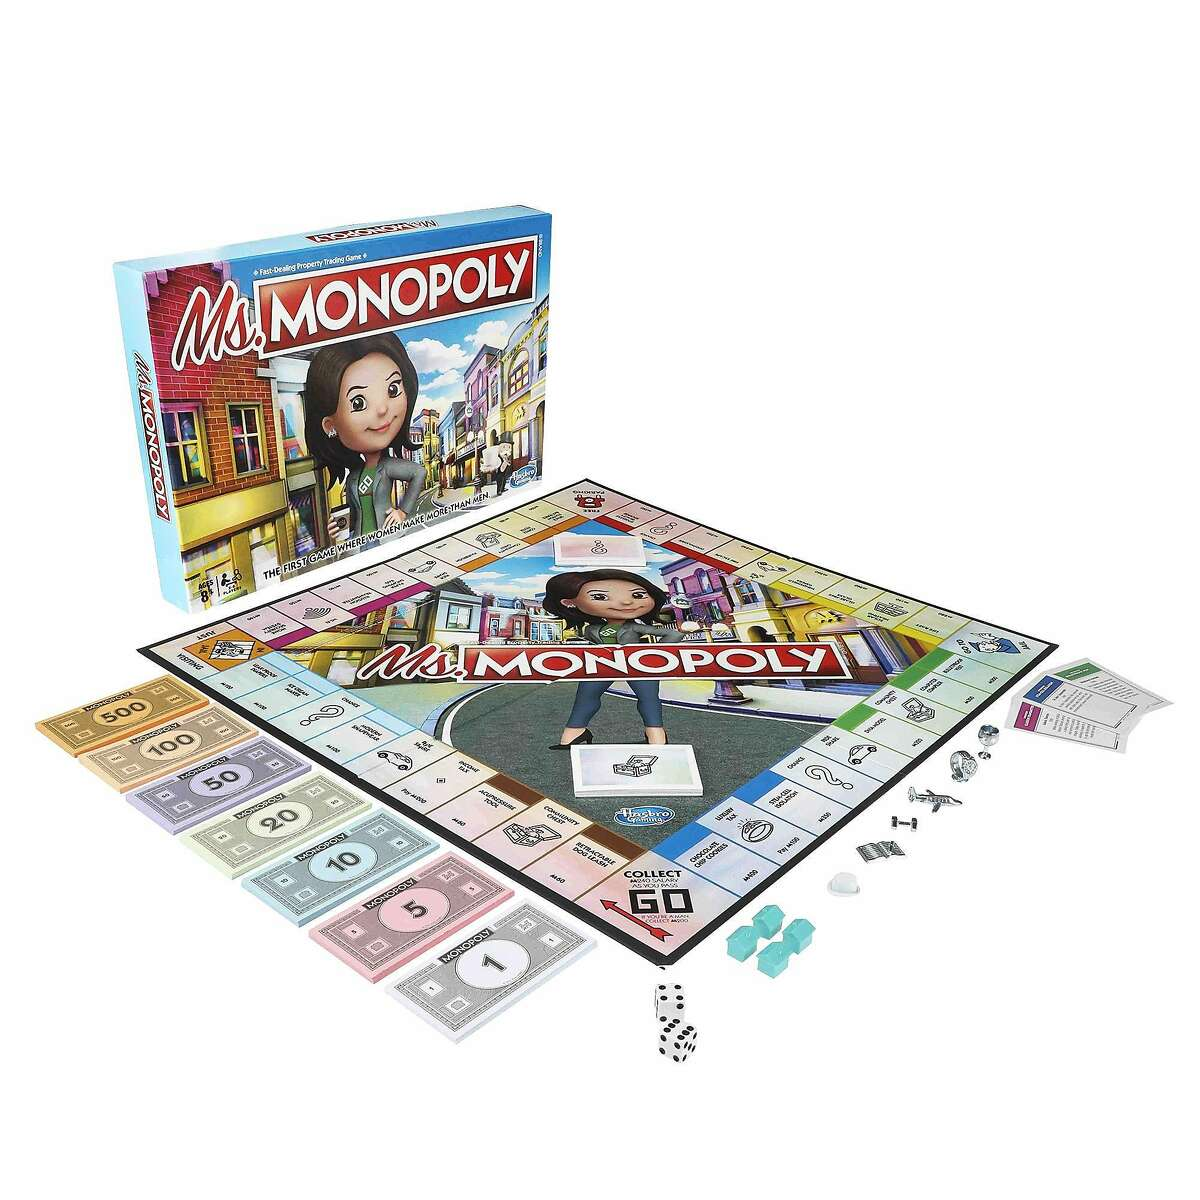 Toymaker Hasbro will launch Ms. Monopoly this month. It's a new take on the classic Monopoly game that celebrates women trailblazers. (Hasbro)